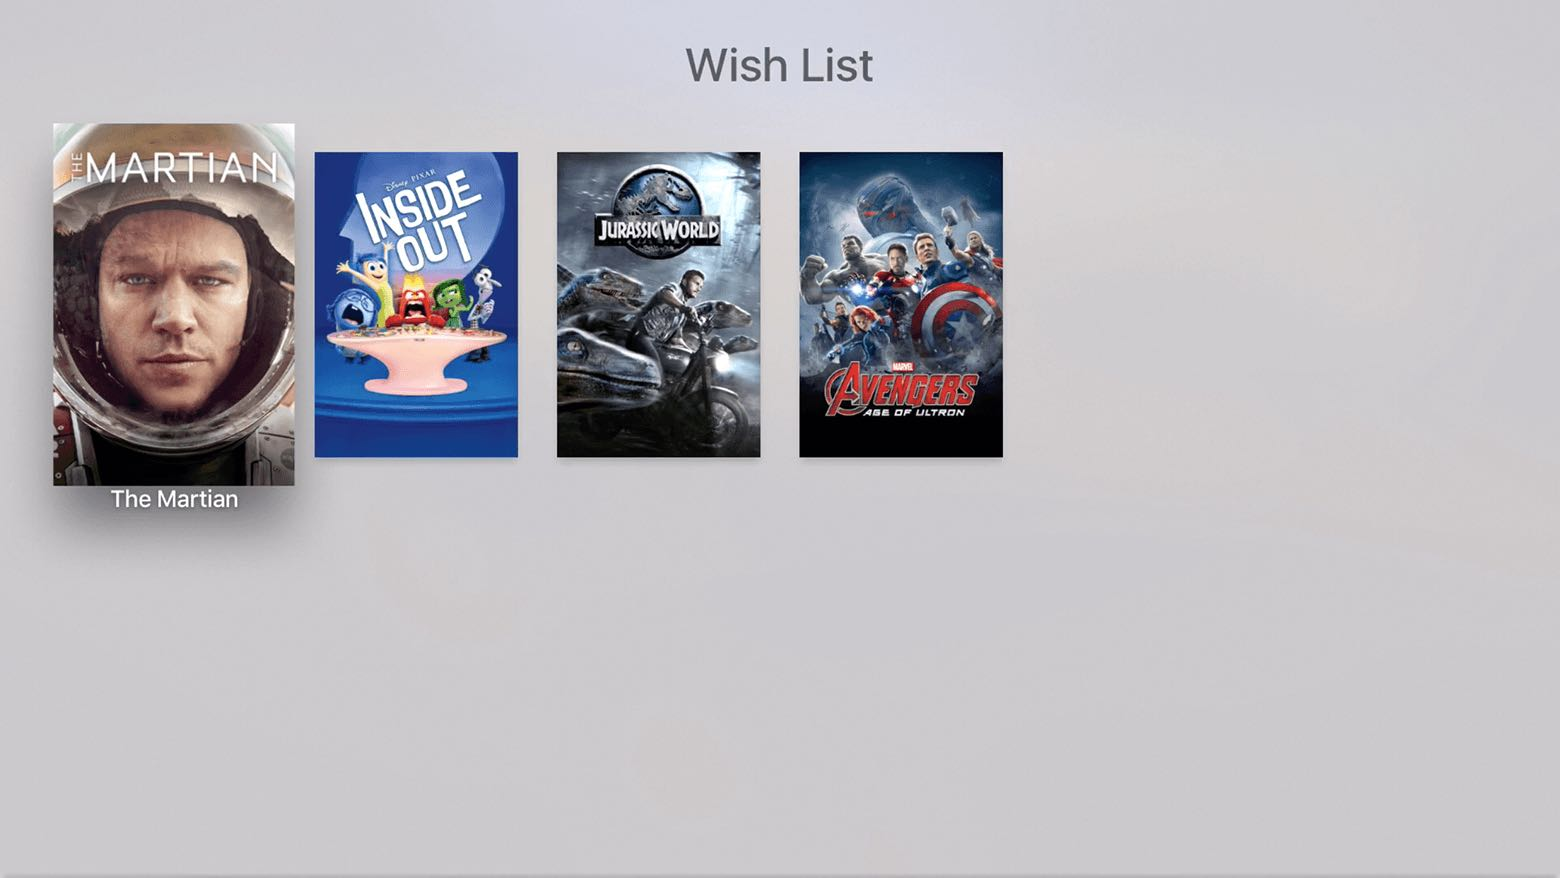 tvOS iTunes Movies view Wish List Apple TV screenshot 002